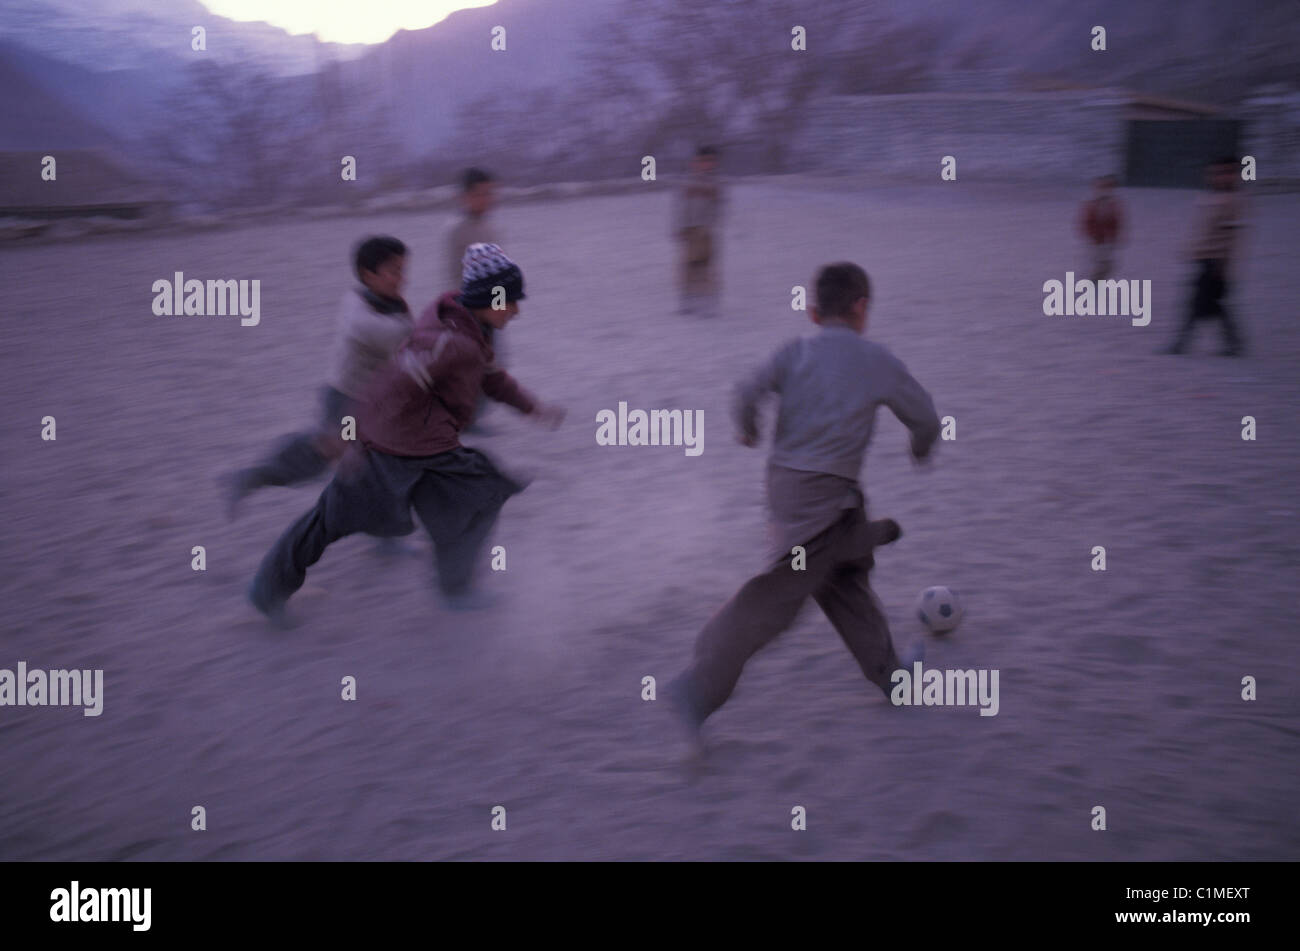 schoolboys in dusty school yard play soccer in Karimabad Hunza region of Pakistan - Stock Image